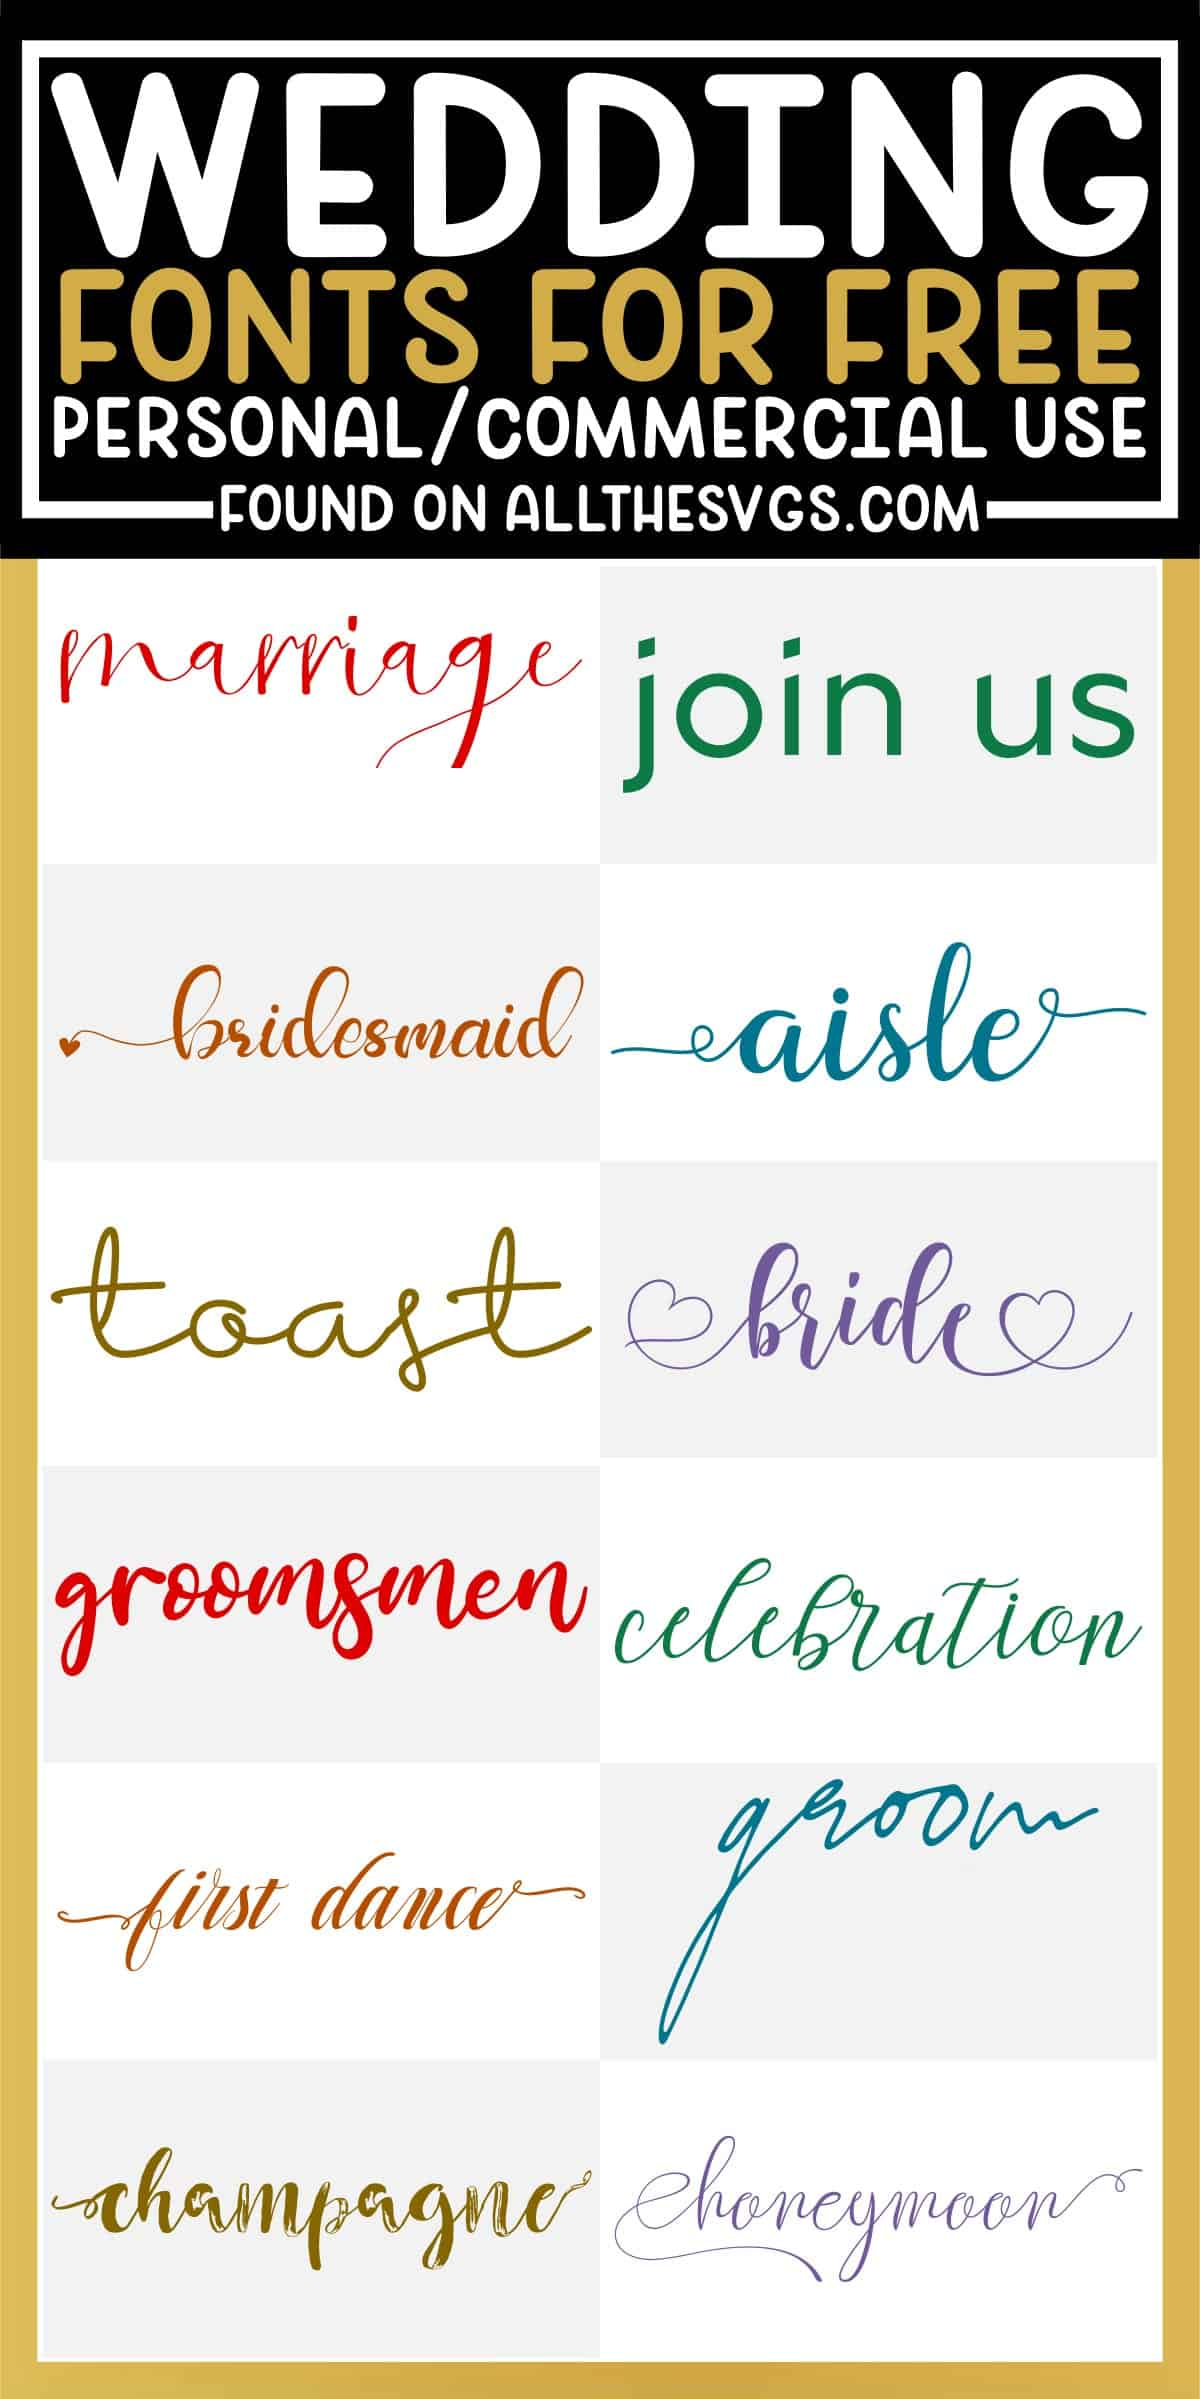 showcase of 12 best free wedding fonts for commercial use.